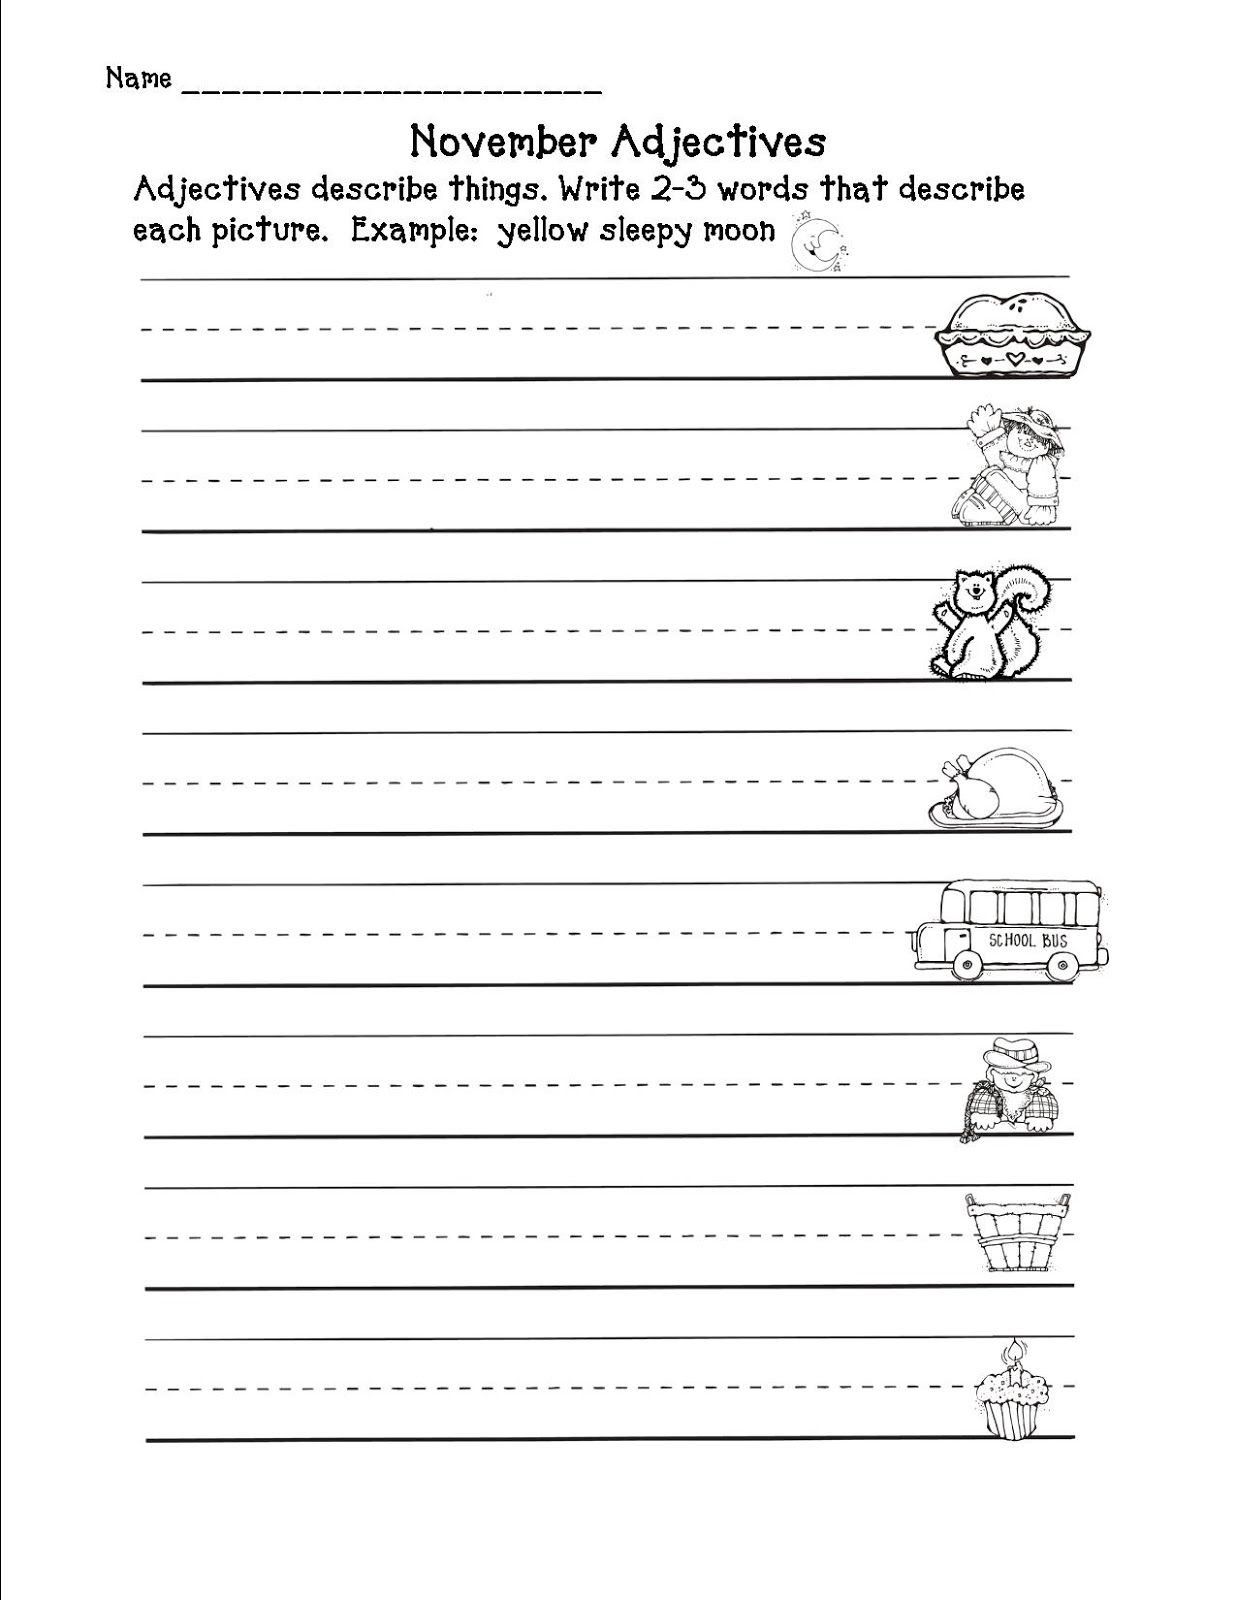 medium resolution of November Adjectives Worksheet Second Grade Freebies   Second grade  freebies